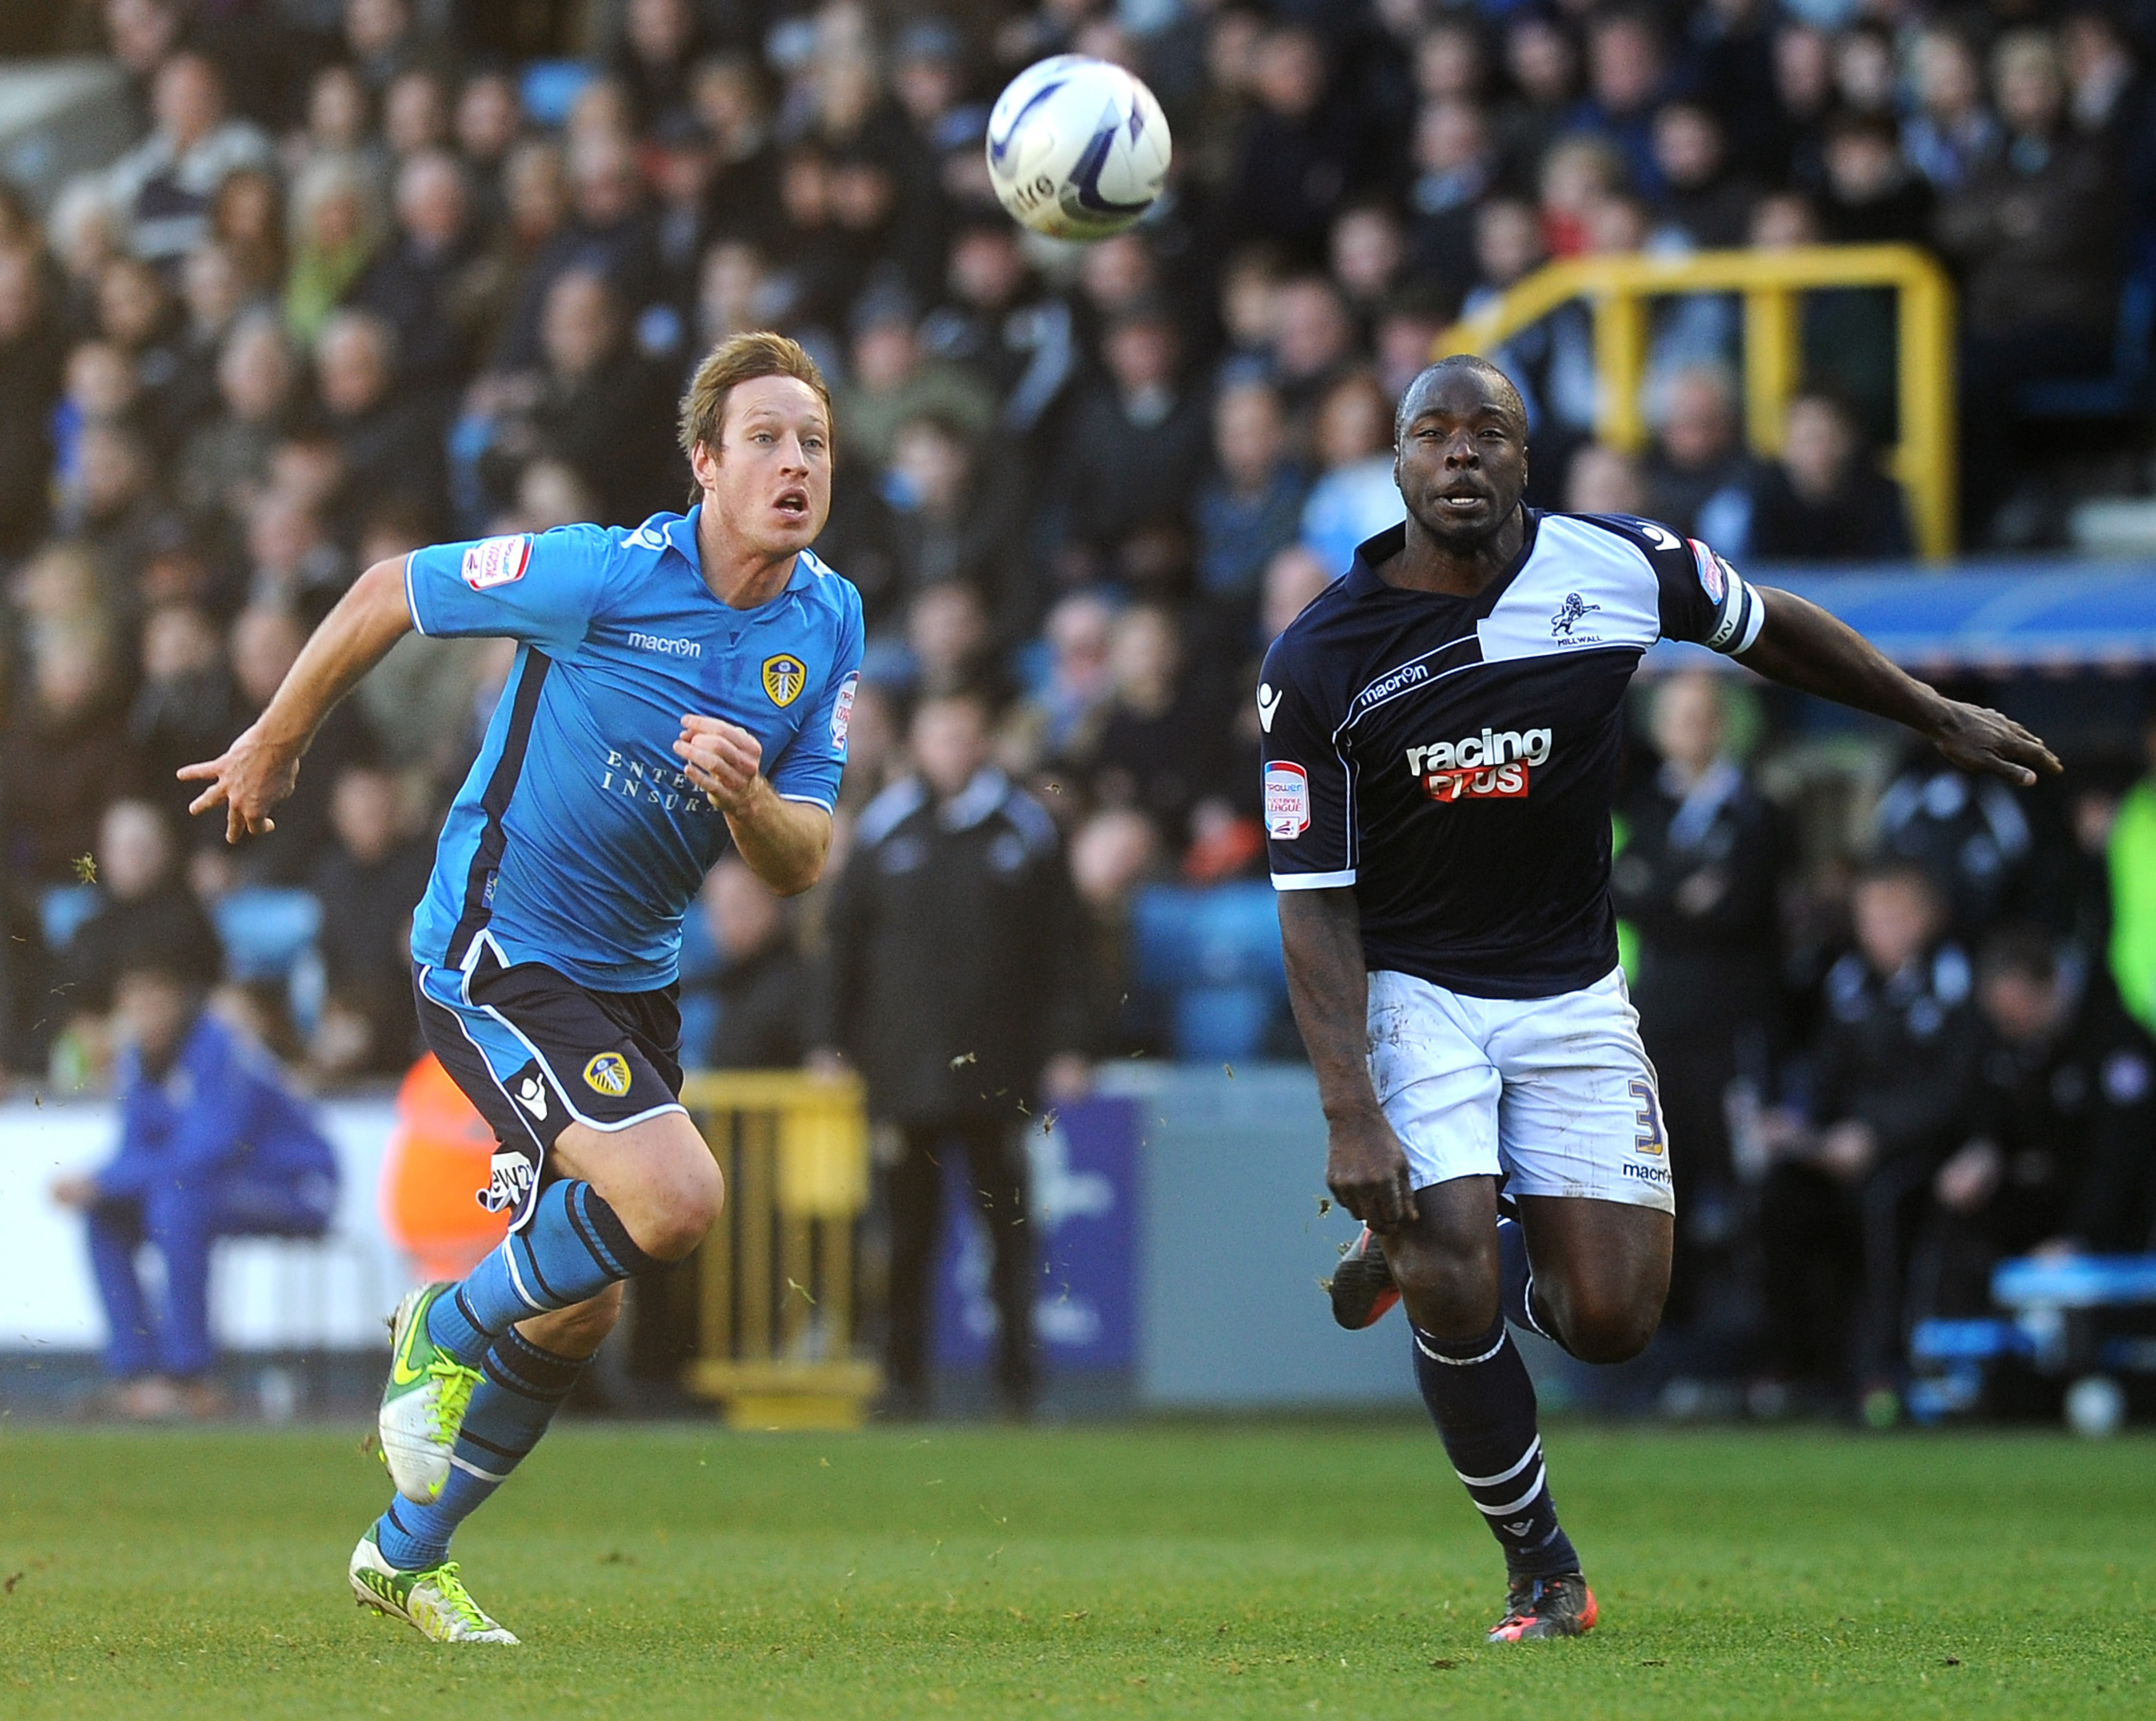 Luciano Becchio was back on the goal trail during Leeds United's win over Crystal Palace.